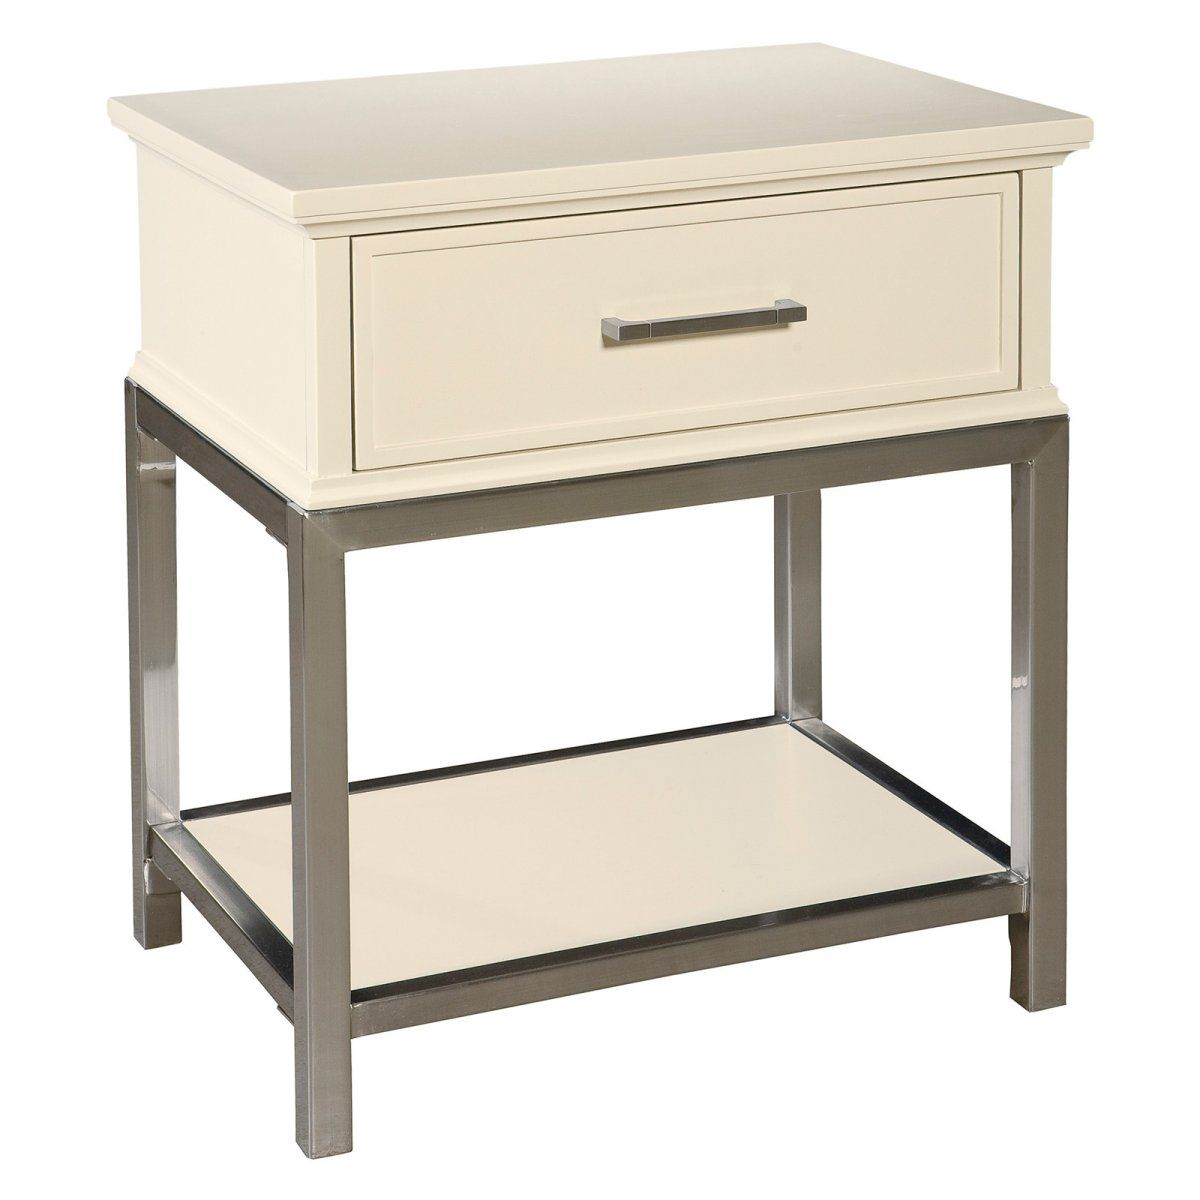 Studio Home Contemporary 1 Drawer Nightstand Nightstands At